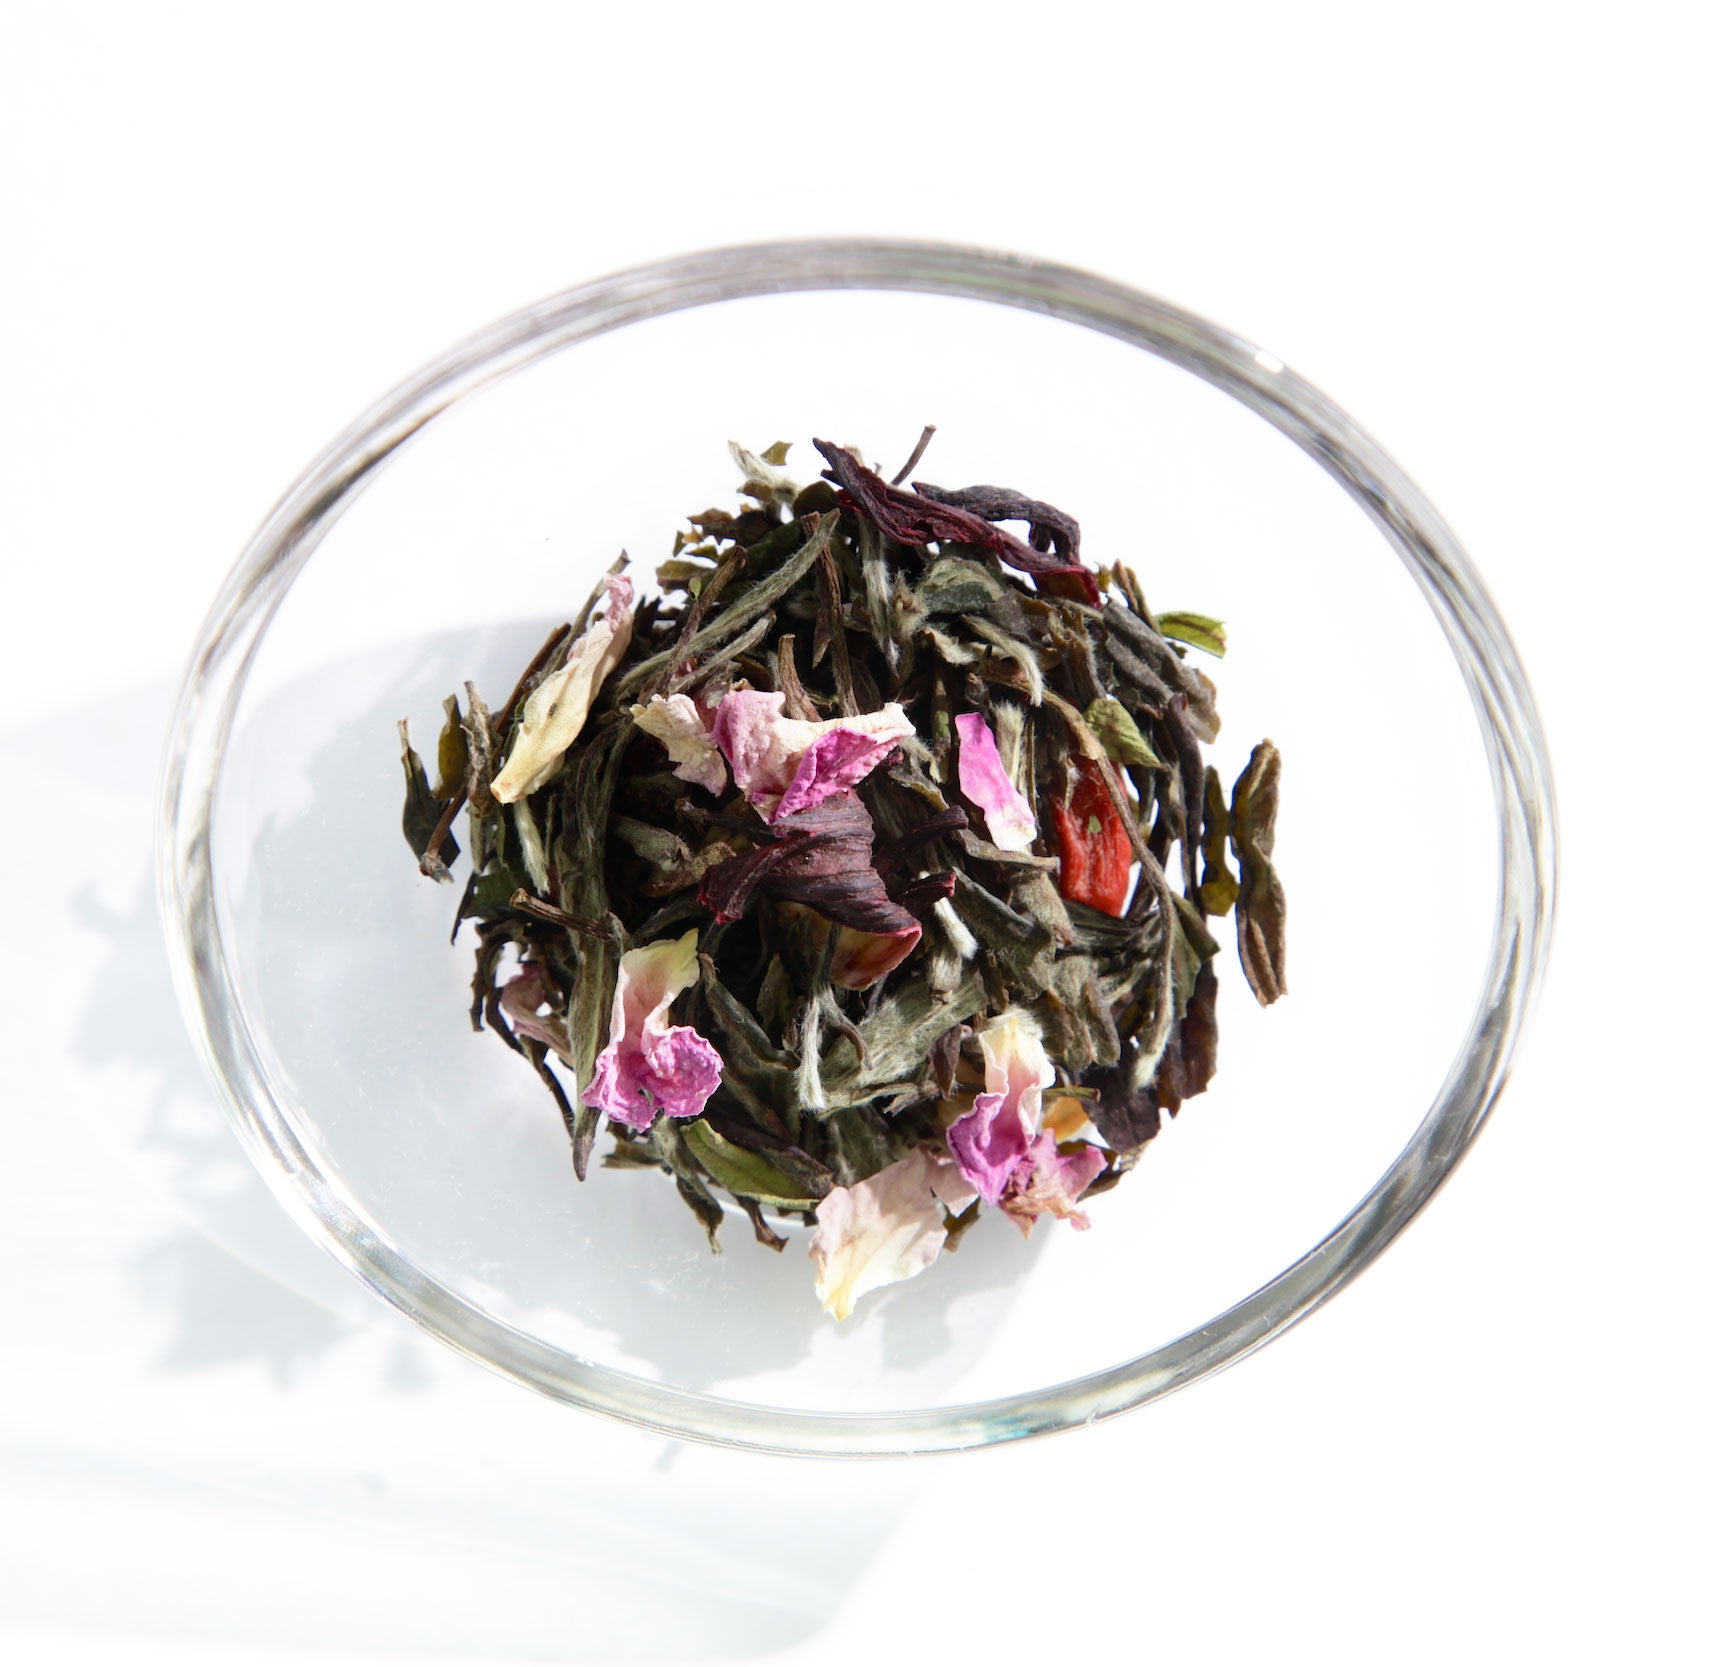 TEA emotea mindfulness BEAUTY YOU  No 105 dried